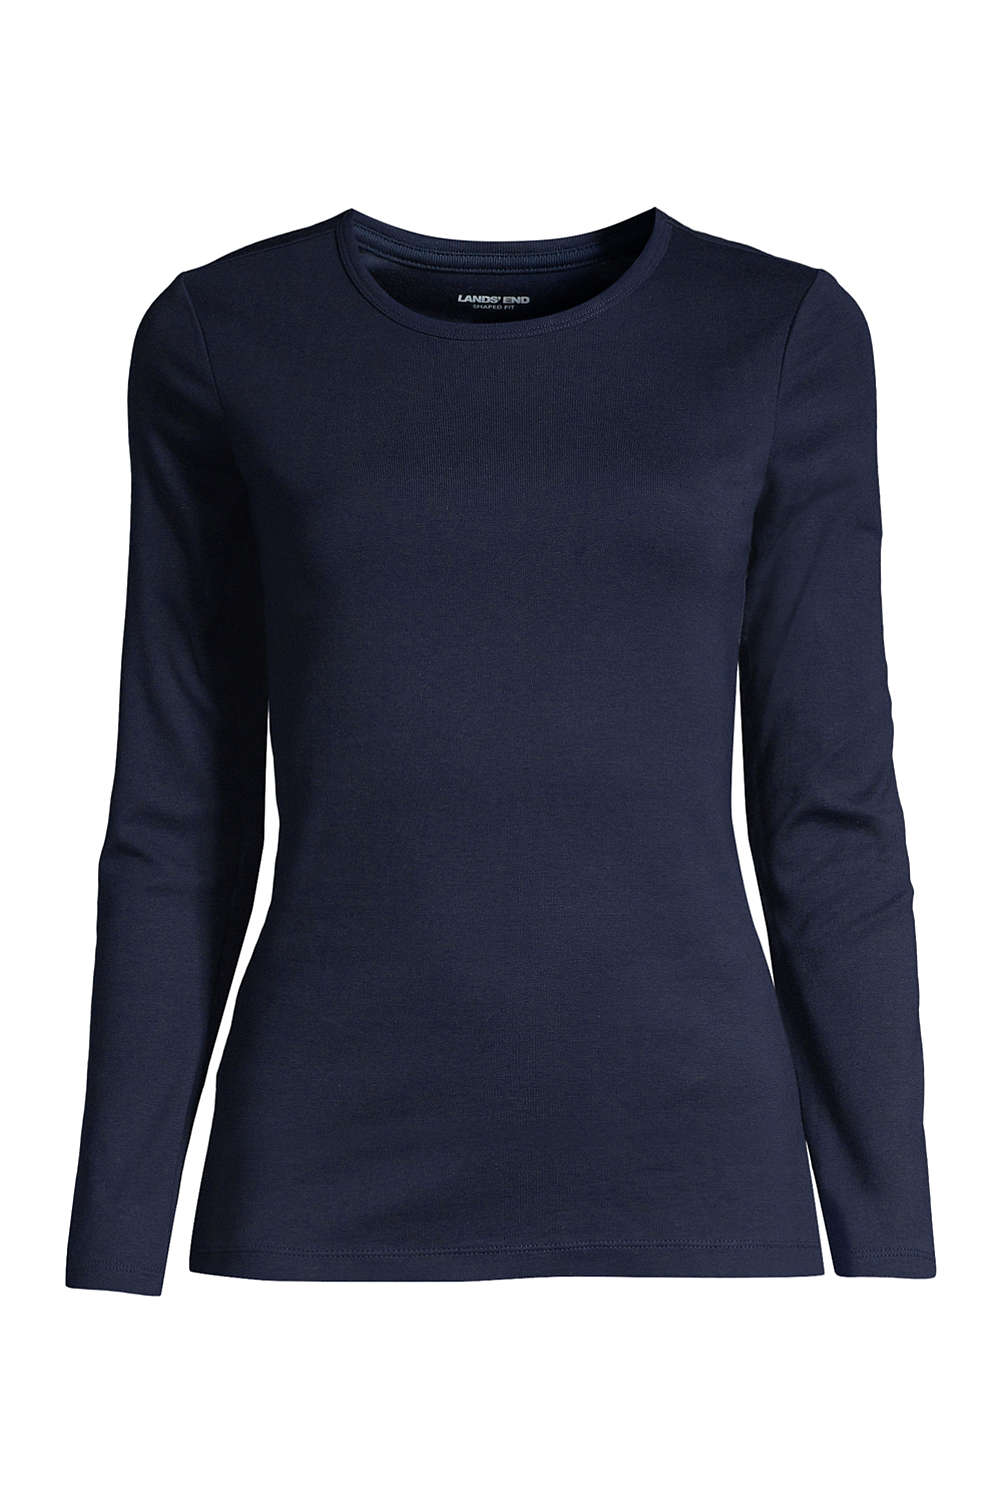 ab59d991e93 Women s All Cotton Long Sleeve T-Shirt - Rib Knit Crewneck from Lands  End